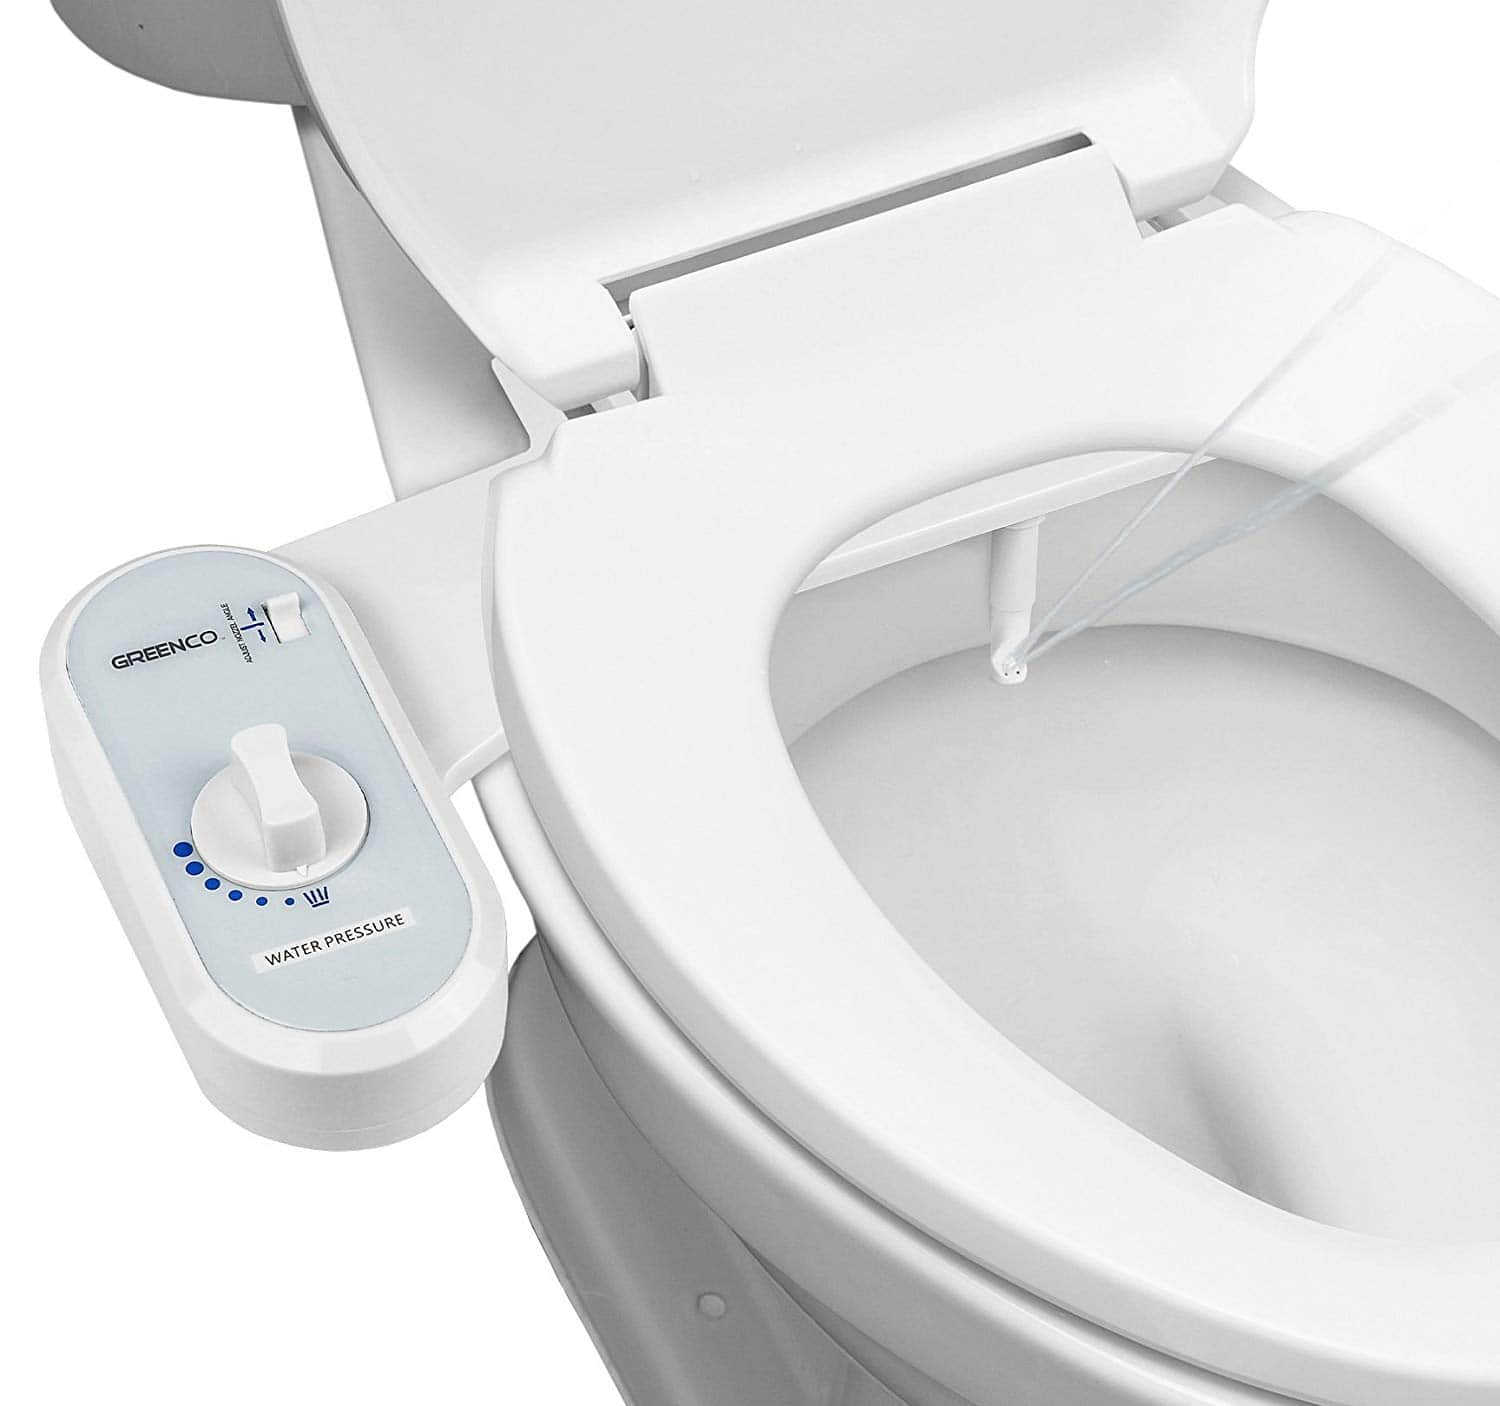 Greenco Bidet Fresh Water Spray Non-Electric Mechanical Bidet Toilet Seat Attachment $17.99 (Amazon)